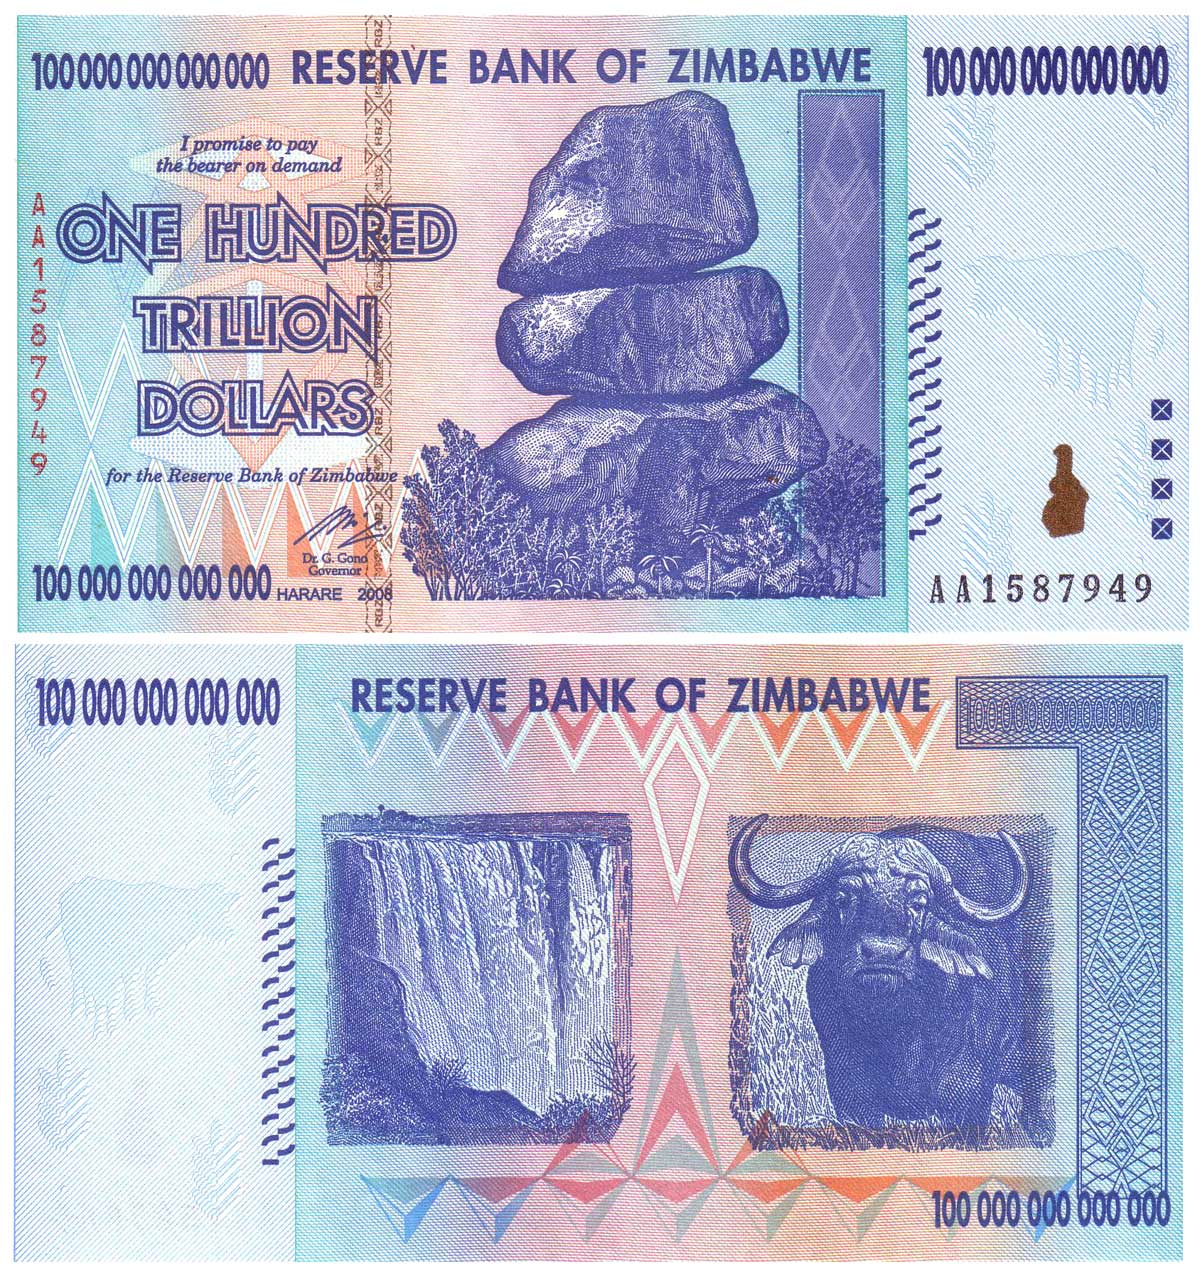 indeginisation of banks in zimbabwe Indigenisation affects investment in zimbabwe  but when there is so much confusion on what indigenisation means, when there are threats to banks,.